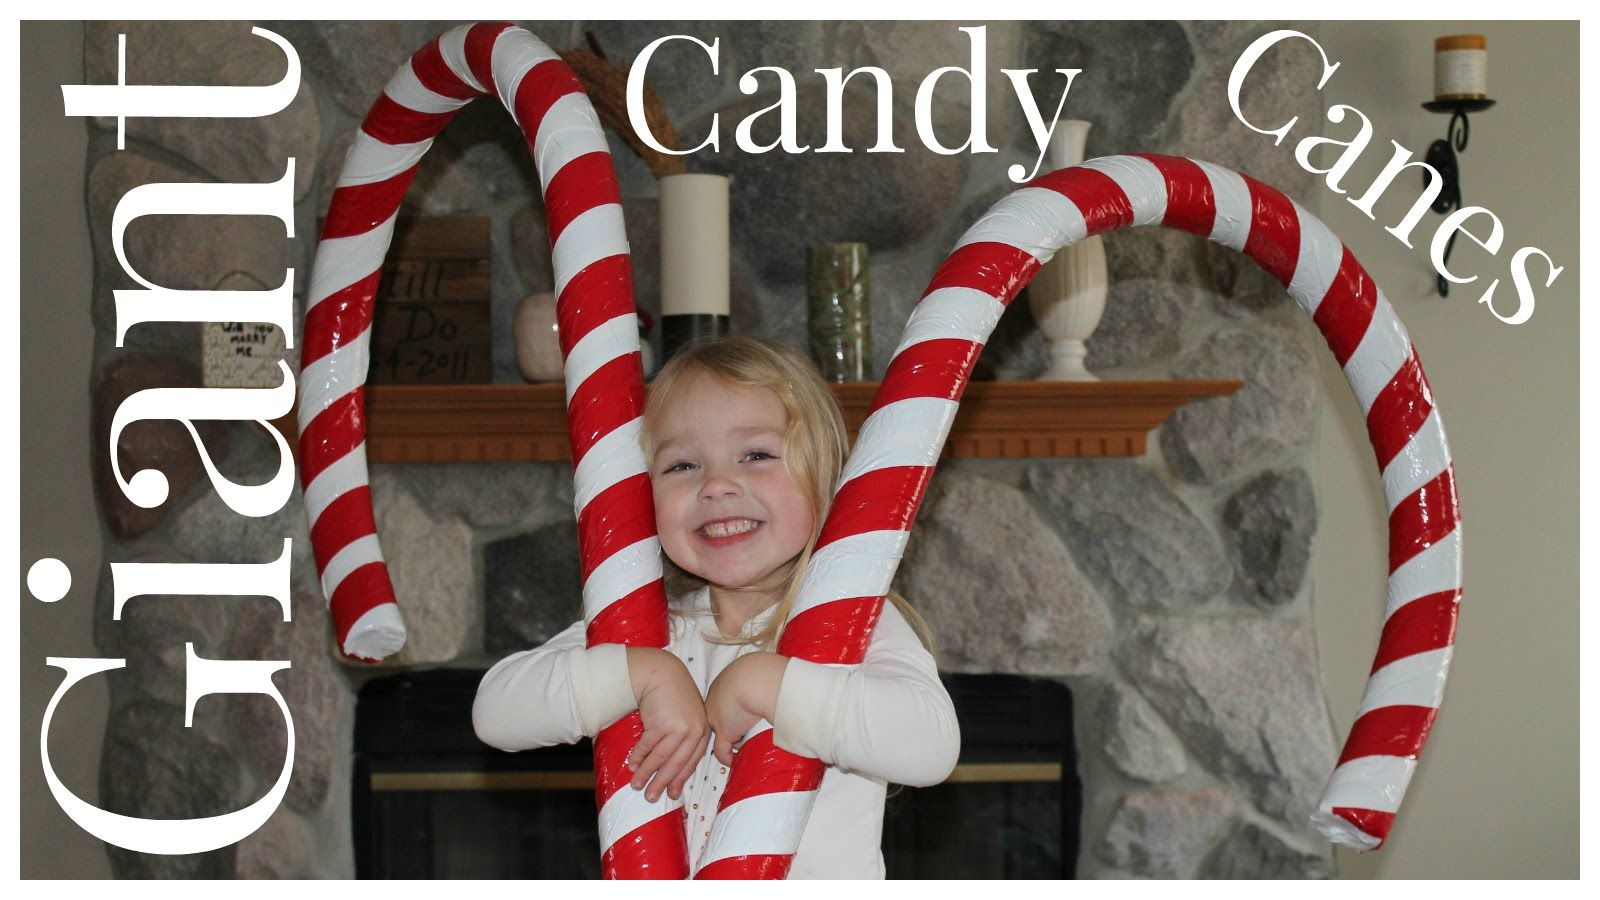 Large Candy Cane Decorations How To Make Giant Candy Cane Decorations  ☃ Christmas Crafts